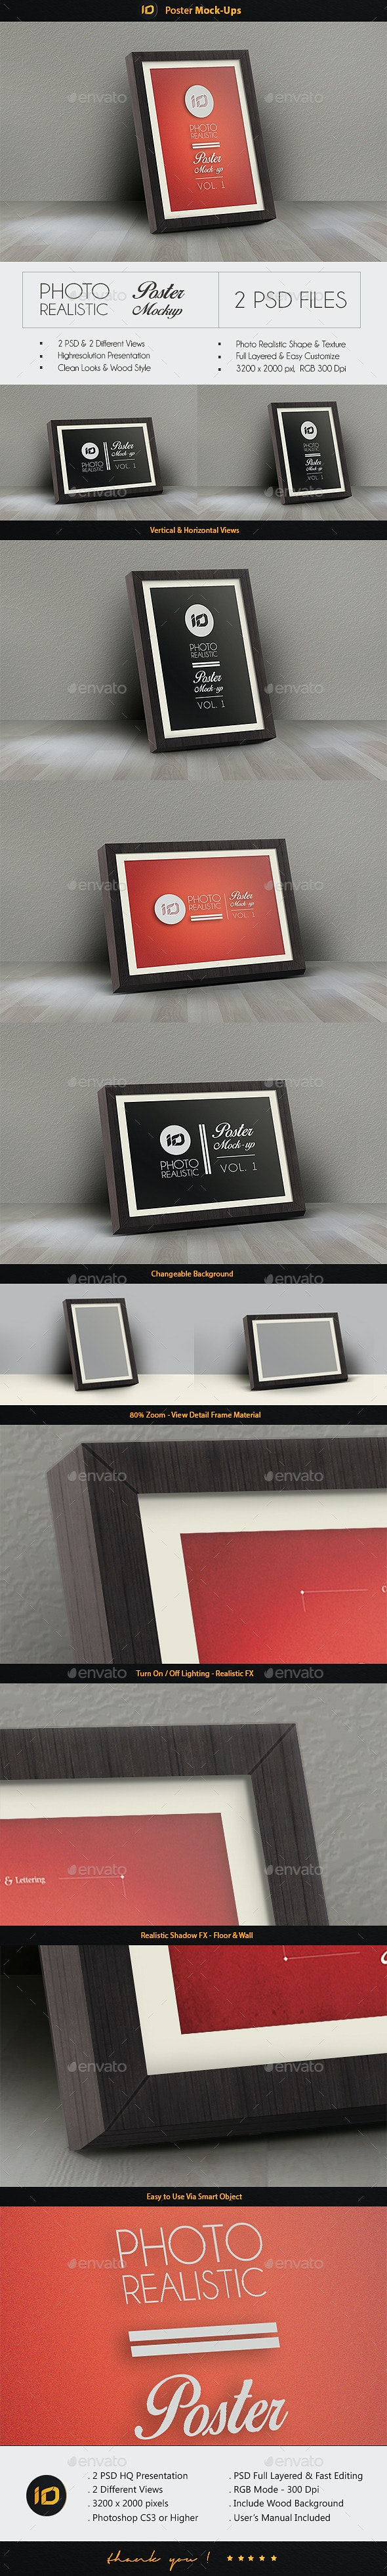 Realistic Poster Mock-Up - Posters Print